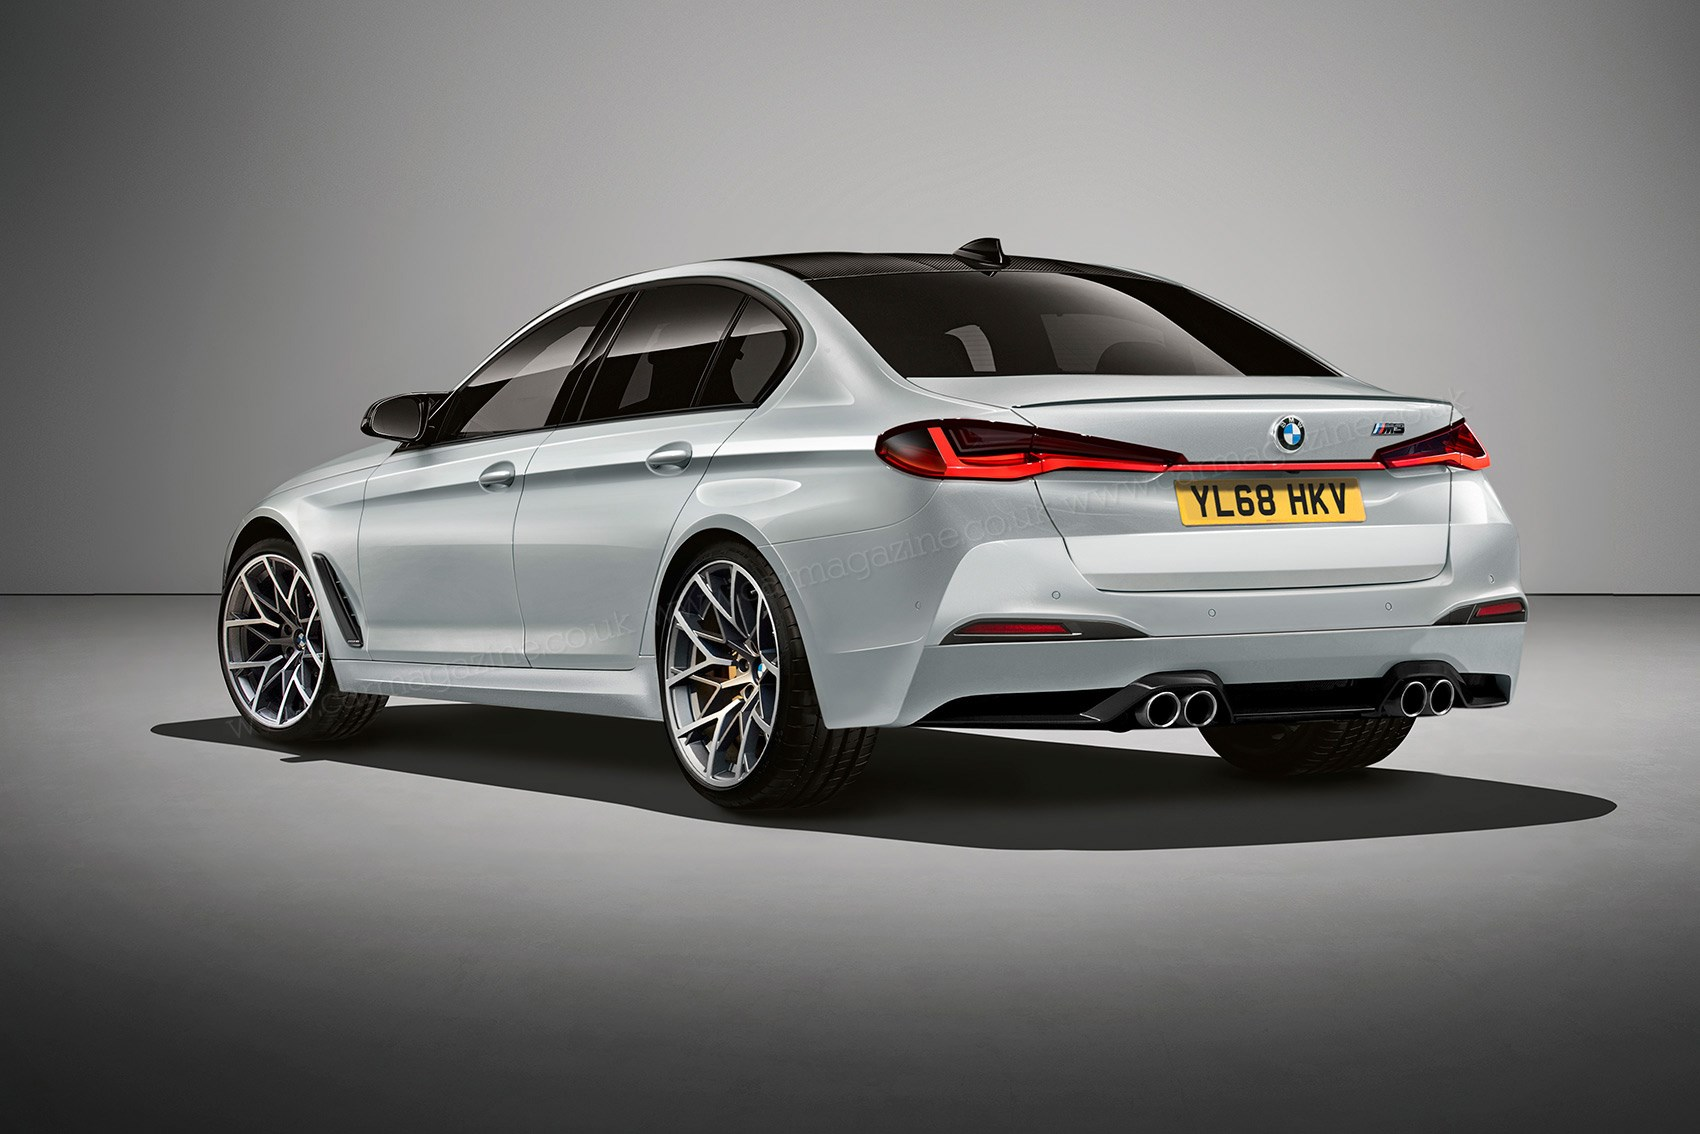 65 The 2020 BMW M4 Images